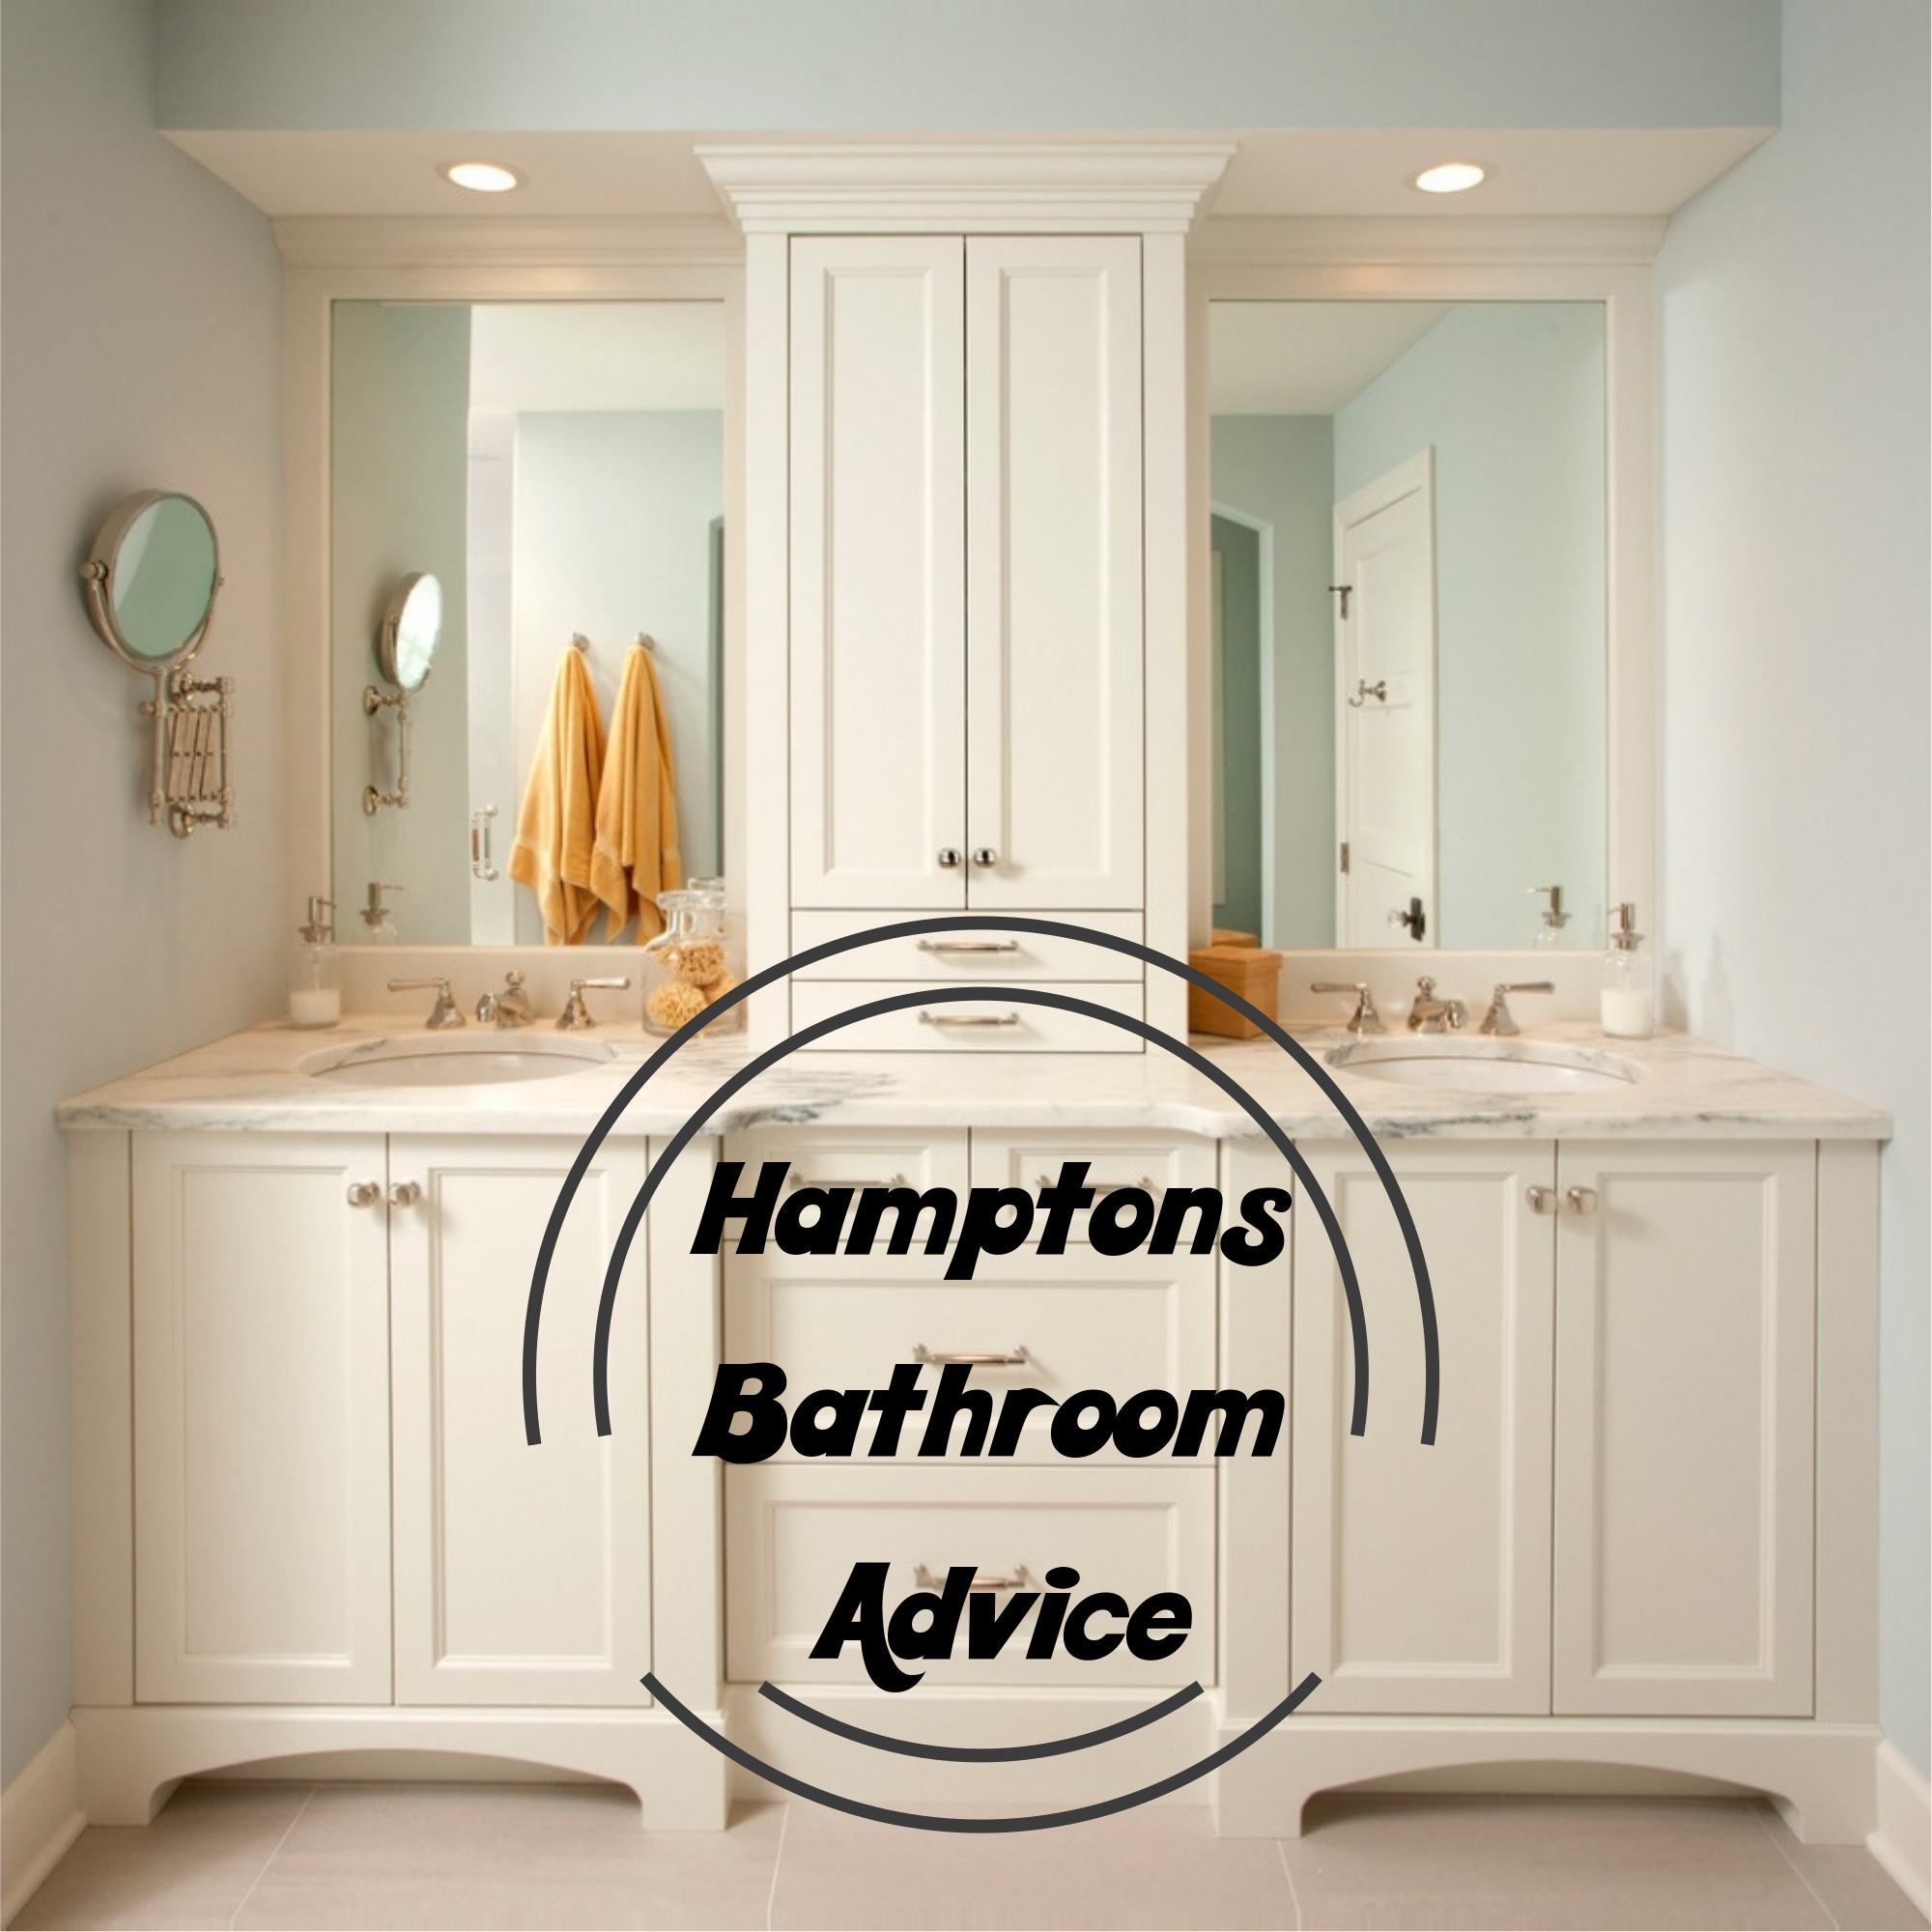 5 Tips To Create Hampton\'s Bathroom In Perth | Bathroom Renovations ...